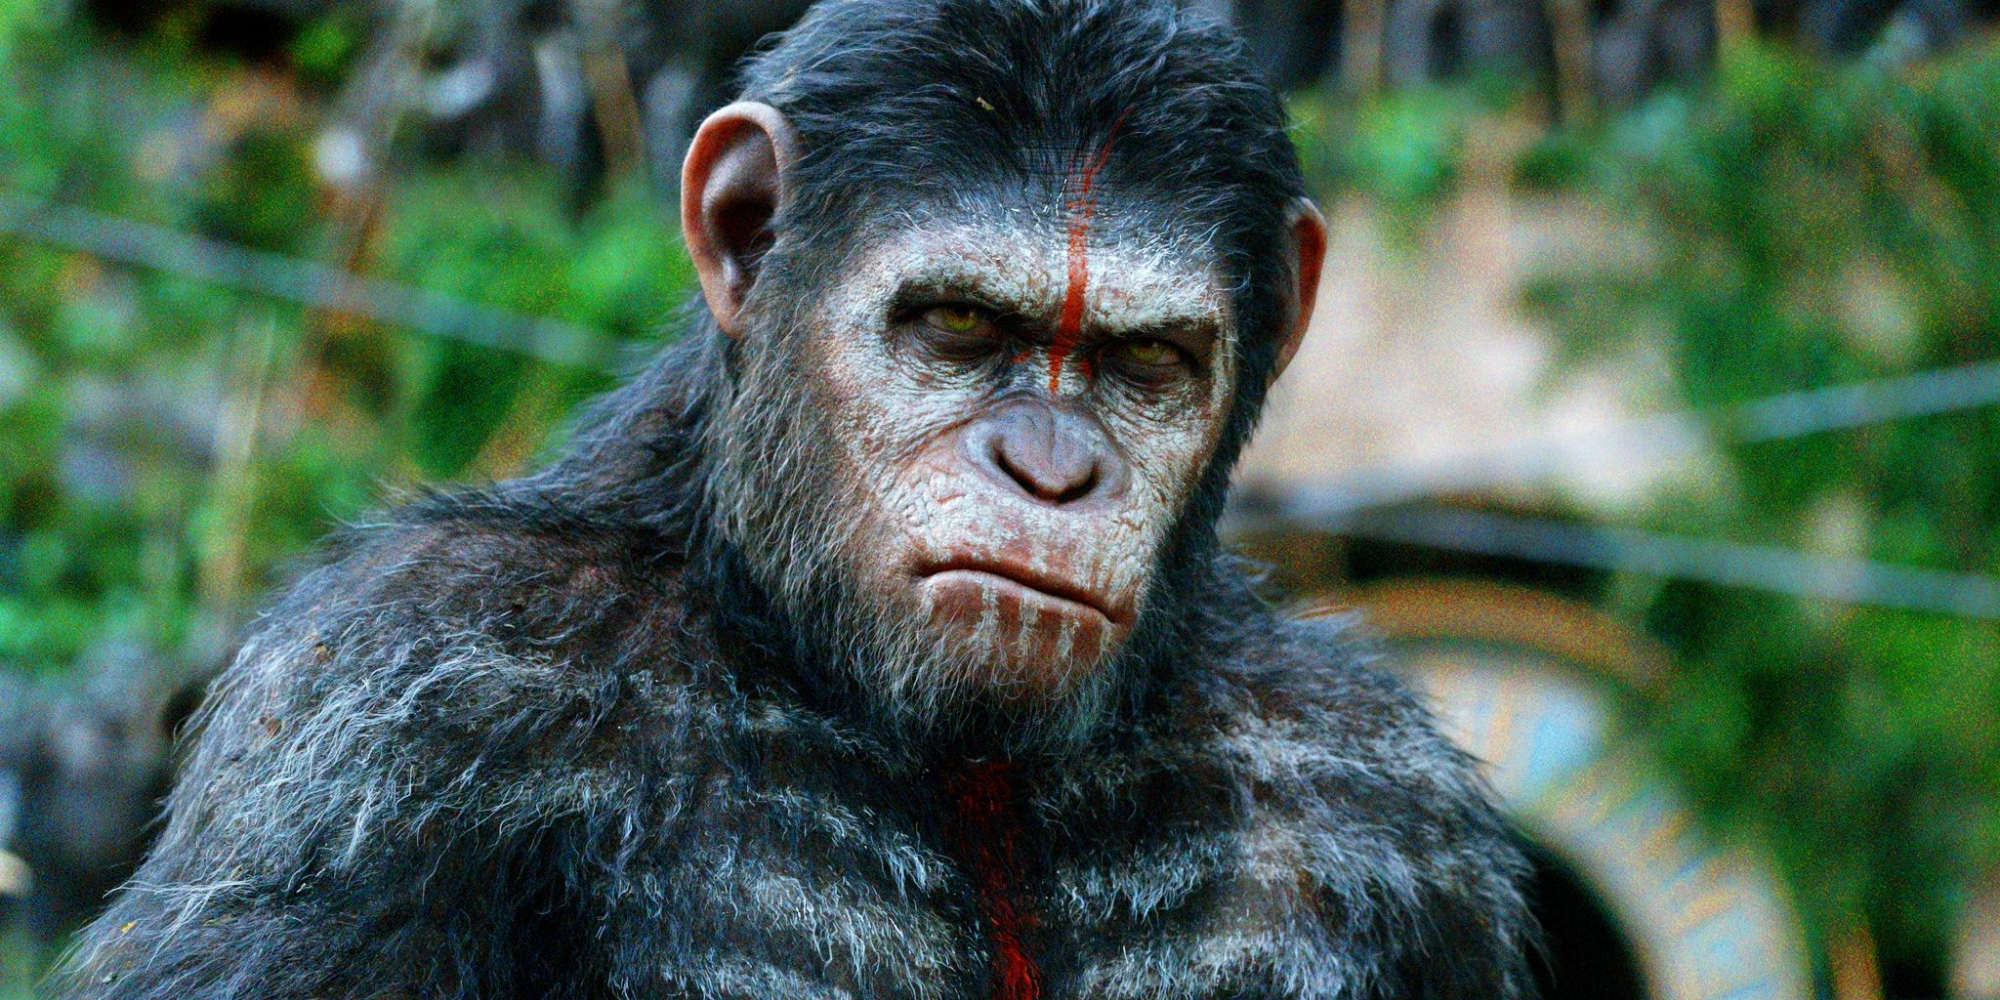 War for the Planet of the Apes Gets an Official Synopsis